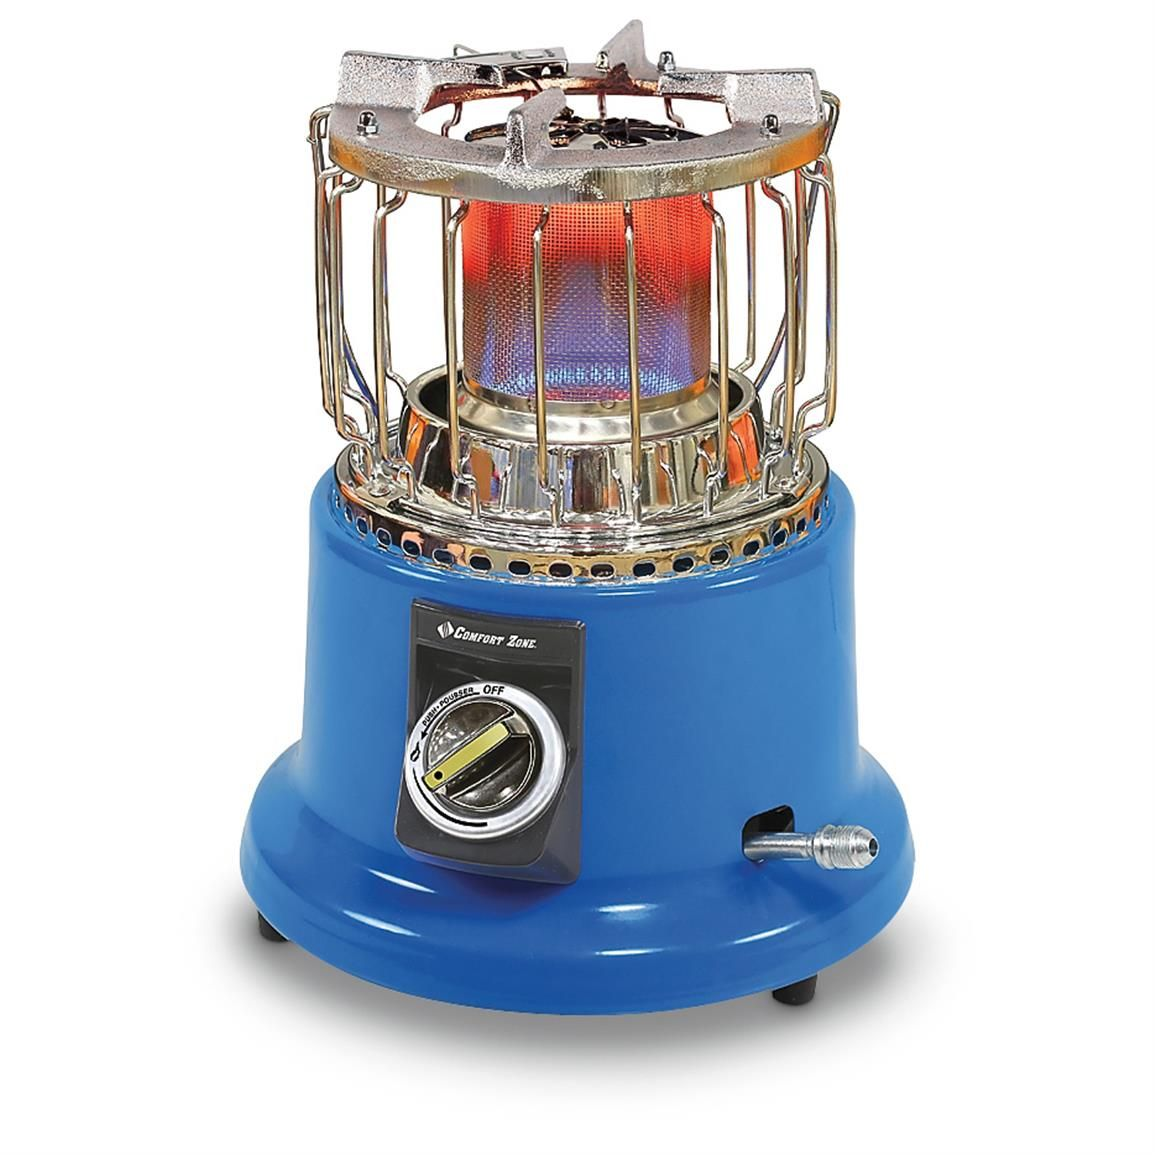 Comfort Zone 2 In 1 Heater Cooker Camping Heater